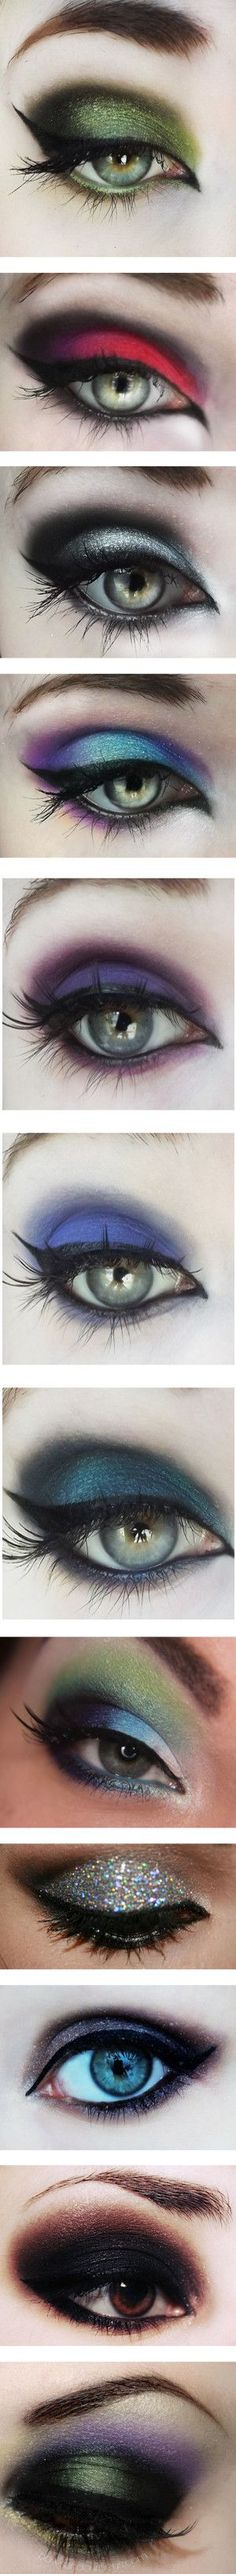 intense eye makeup #beauty #art